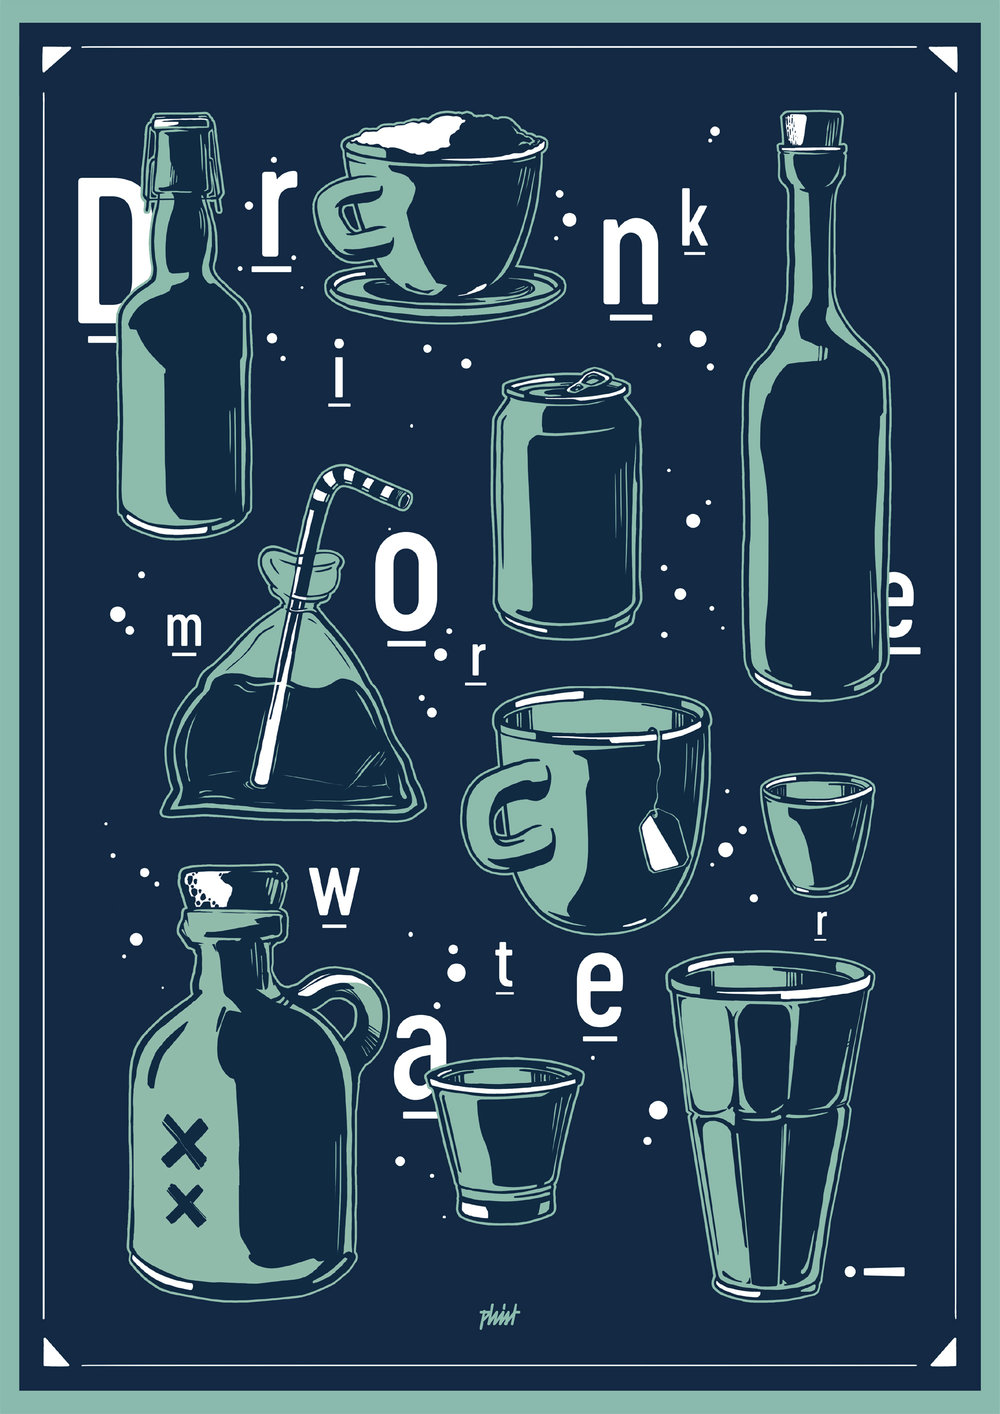 Drink_More_Water_illustration_phist.jpg